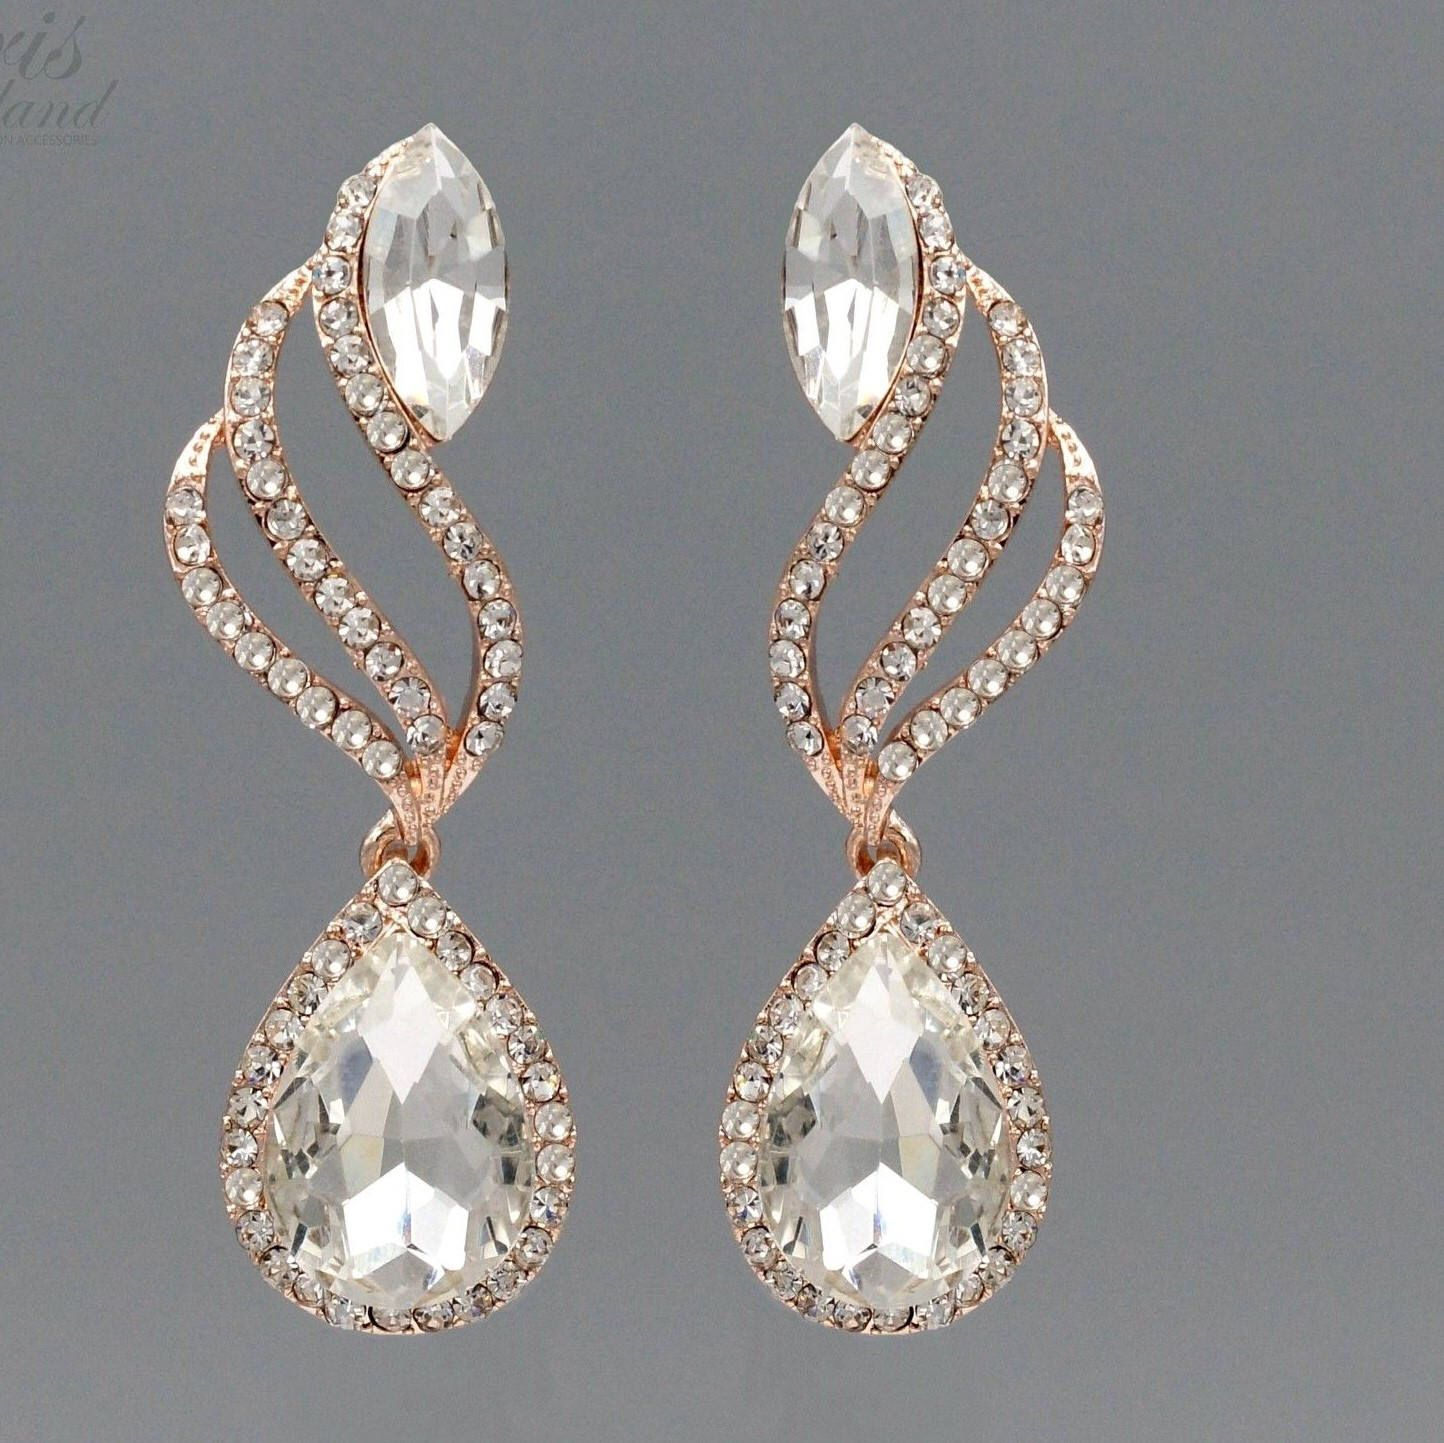 Marquise Stud Earrings for Women 18K Gold Plated Crystal Teardrop Drop Dangle Earrings in Gift Box 4 Colors White / Red / Blue / Green UP34Gy